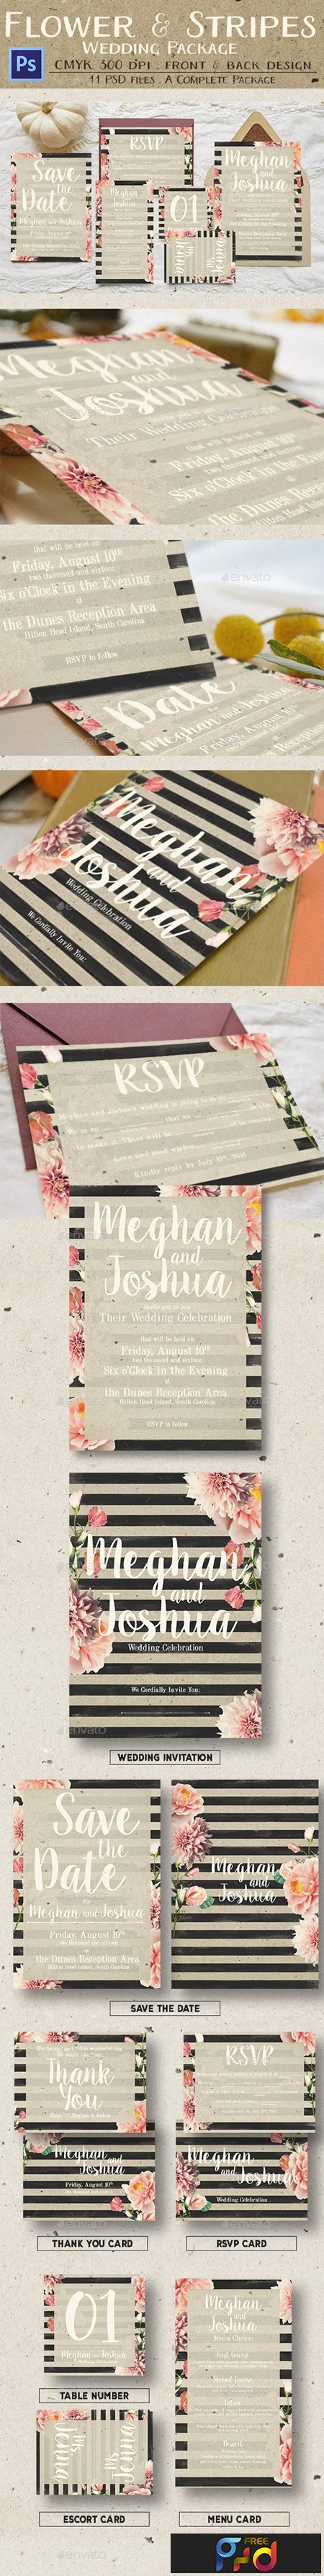 Rustic Flower & Stripes Wedding Package 13641213 1